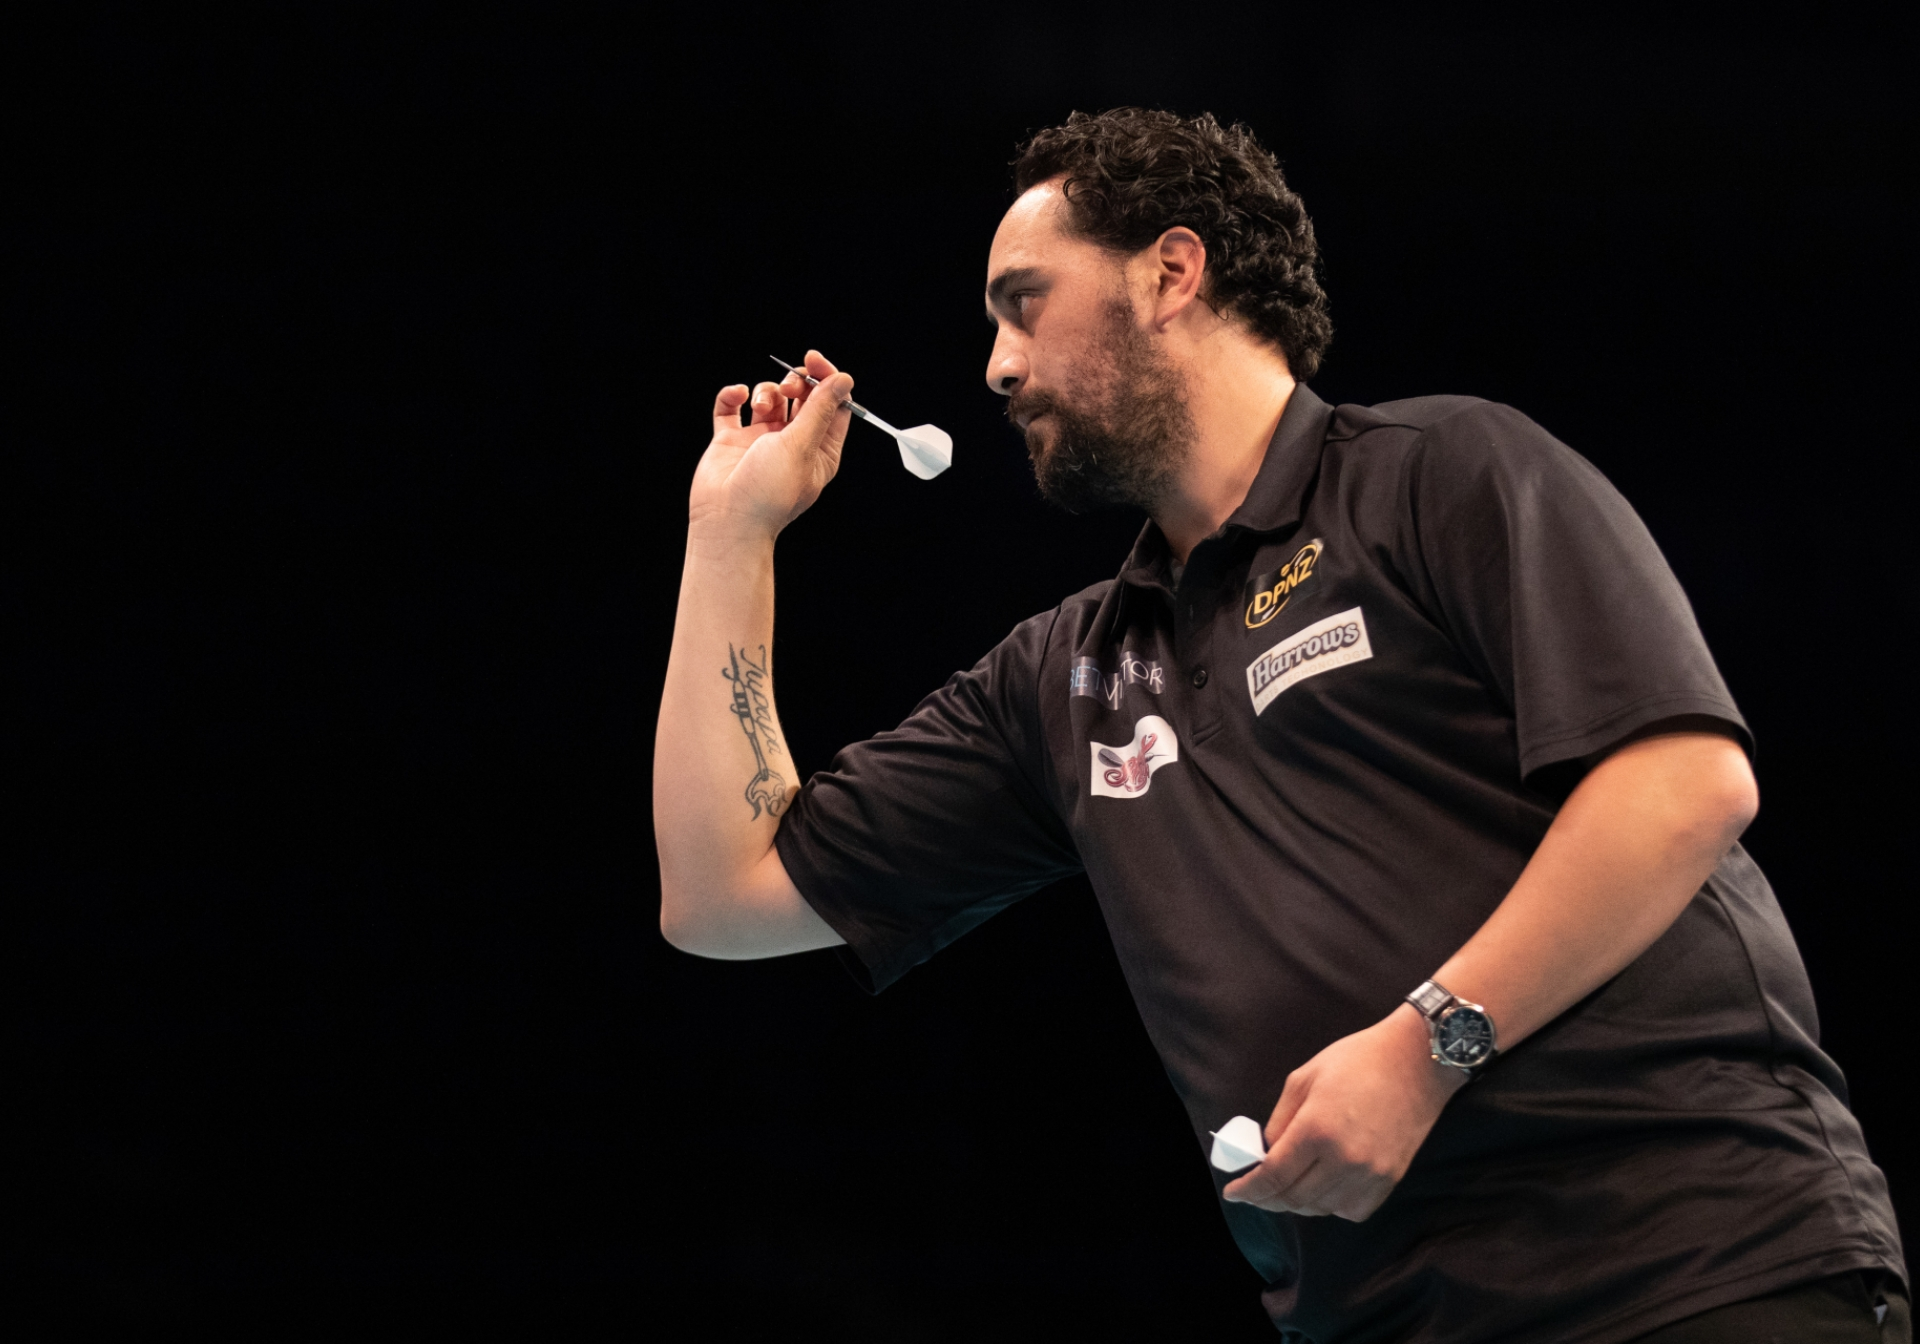 New Zealand's Cody Harris - BetVictor World Cup of Darts (Stefan Strassenberg)